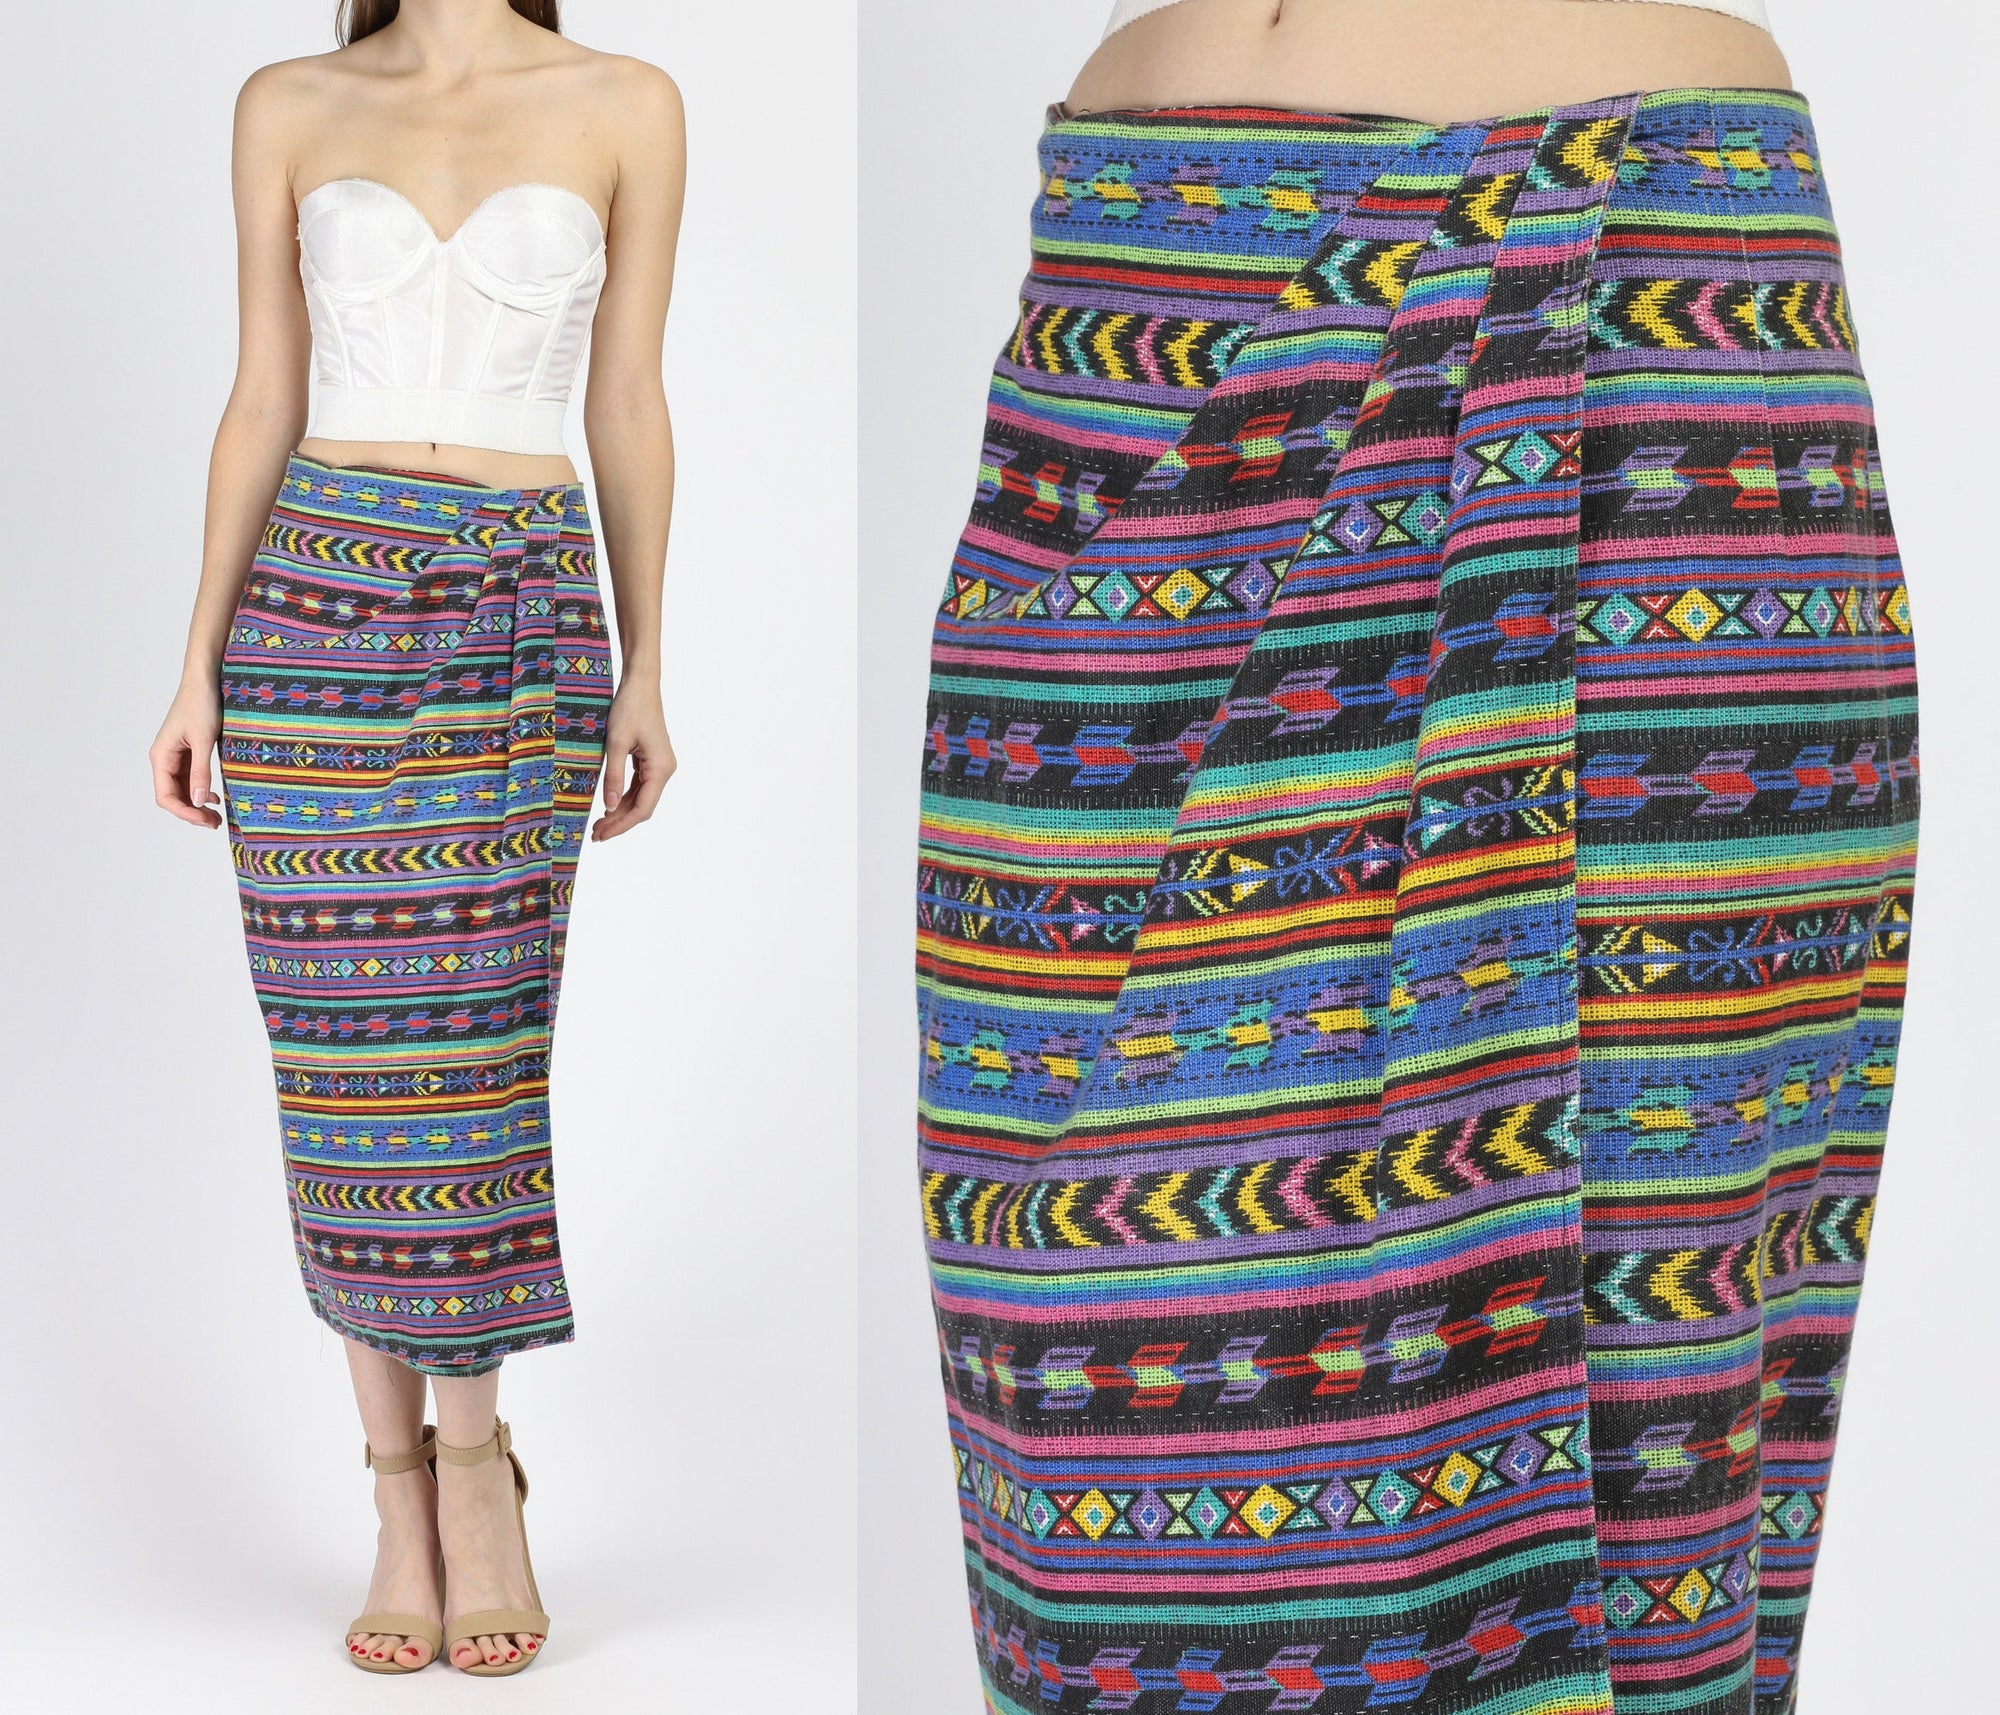 90s Boho Tribal Print Cotton Wrap Skirt - Medium